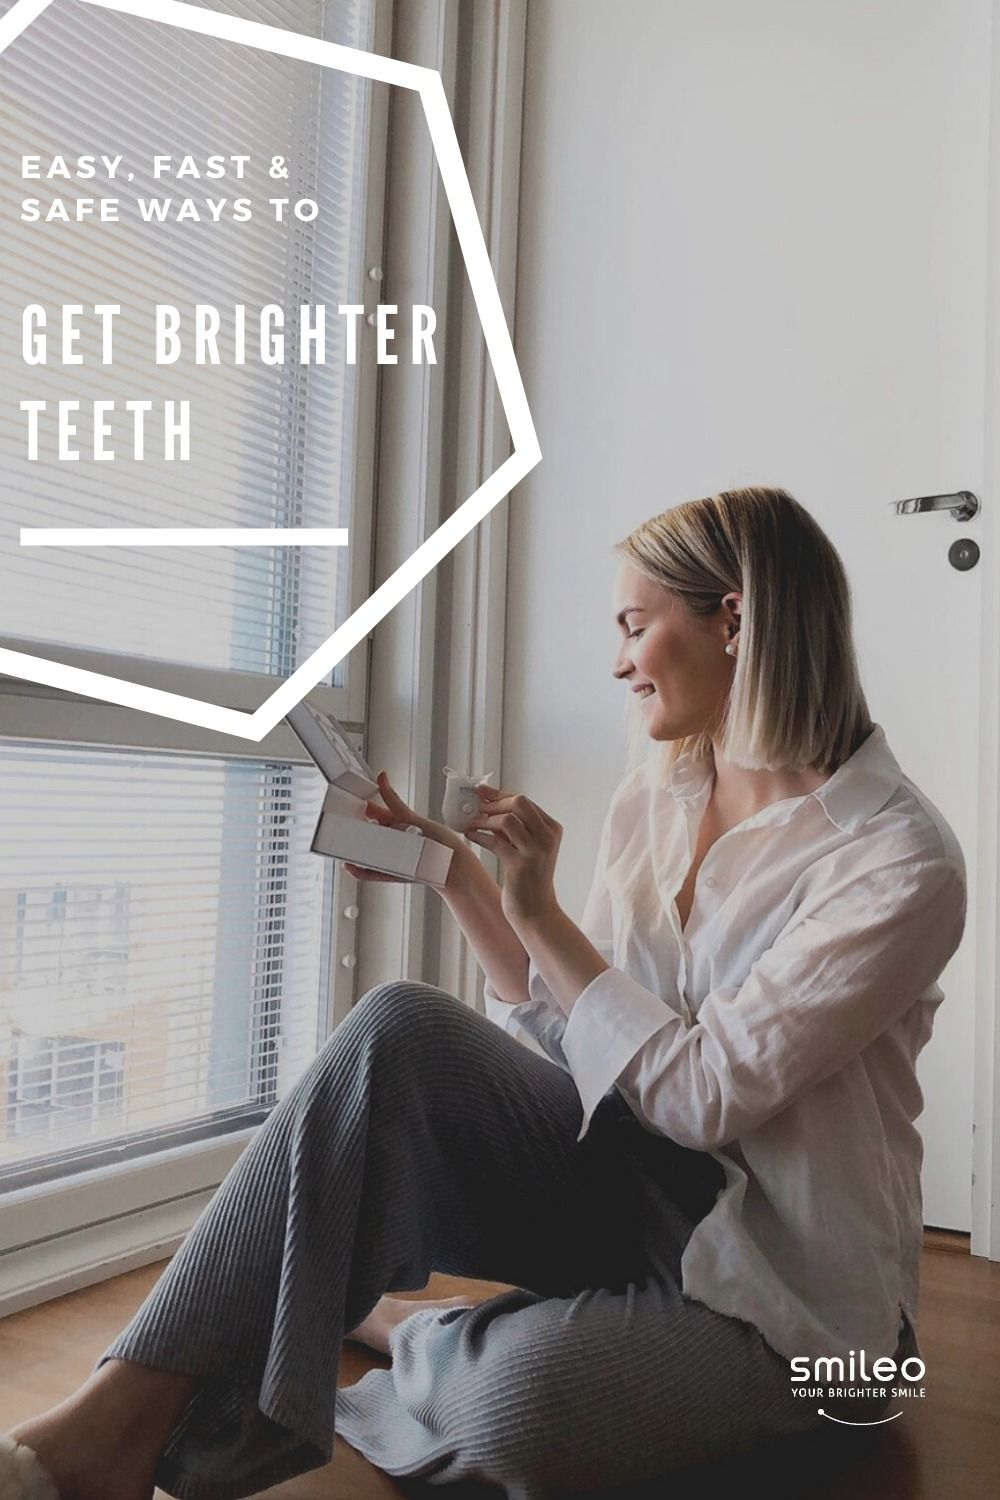 Get find out Easy, Fast and Safe way to your Brighter Smile! All our products are 100% Vegan 🌱 #Brighterteeth #smileo #TeethWhitening #OralCare #Beauty #BeautyProducts #NaturalProducts #AllNatural #AtHomeWhitening #BrighterSmile #VeganProduct #OralCosmetics #CrueltyFree #CrueltyFreeBeauty #CrueltyFreeCosmetics #OralCareRoutineBeautyProducts #WhiteTeeth